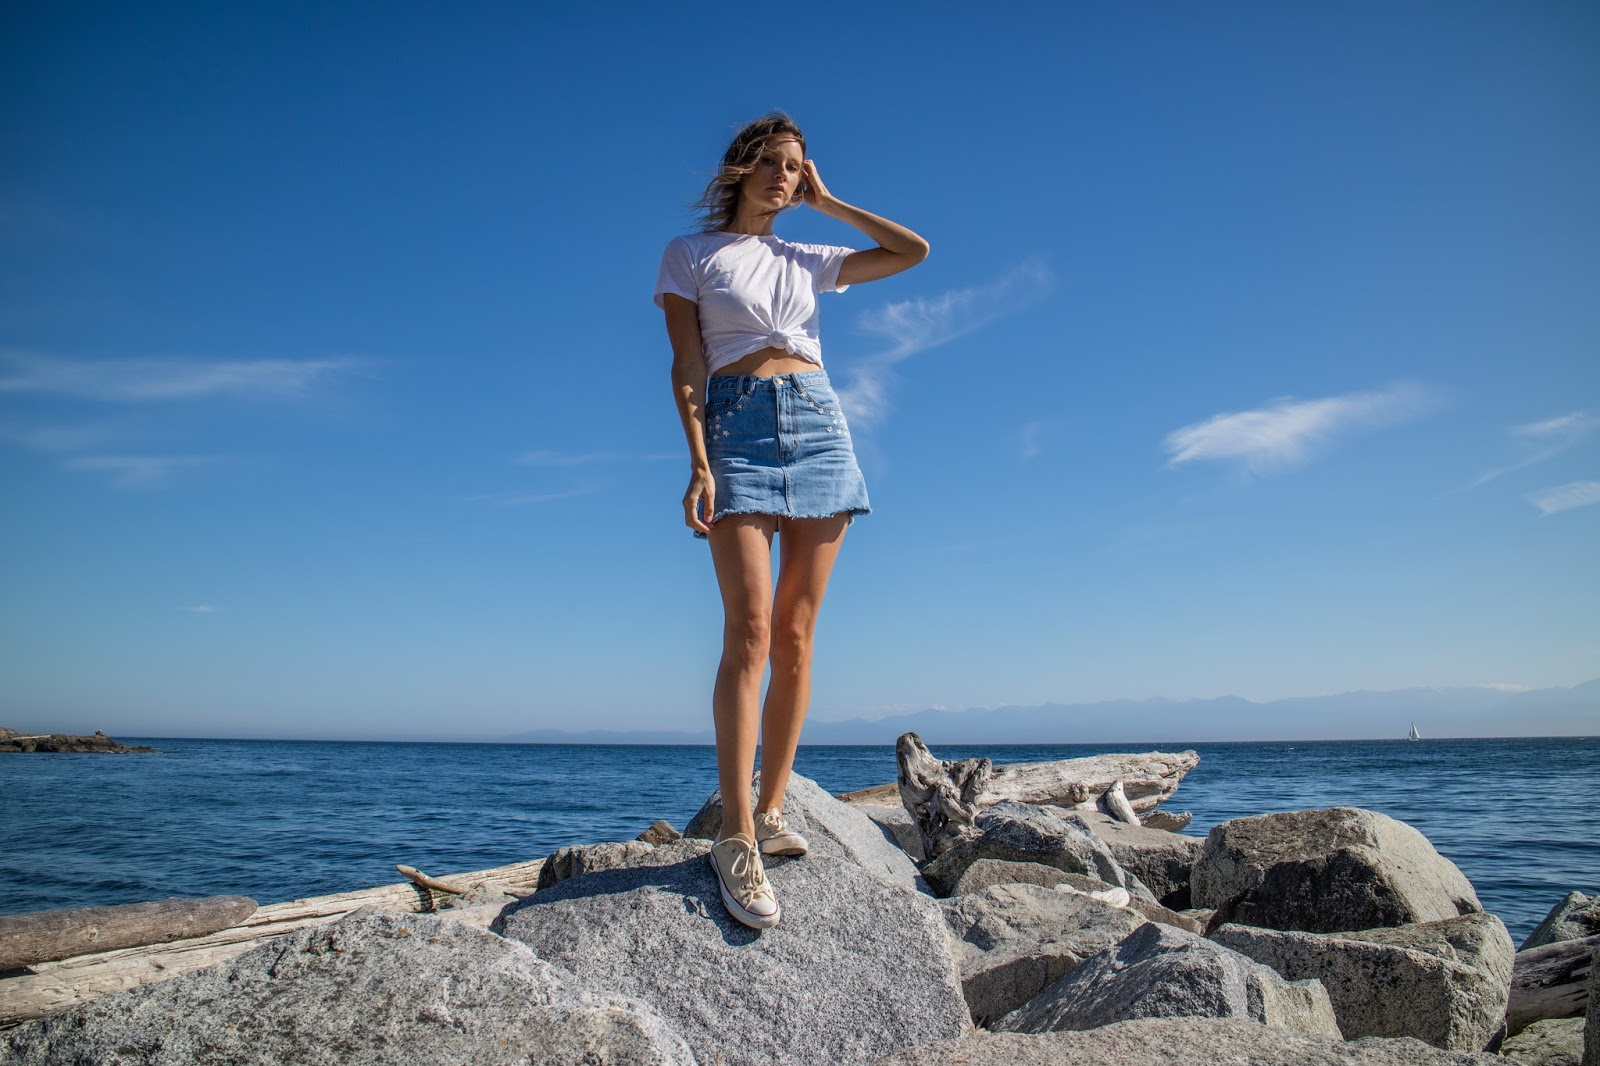 fashion blogger, Alison Hutchinson, is wearing a casual summer look in a white tee and denim skirt by Insight